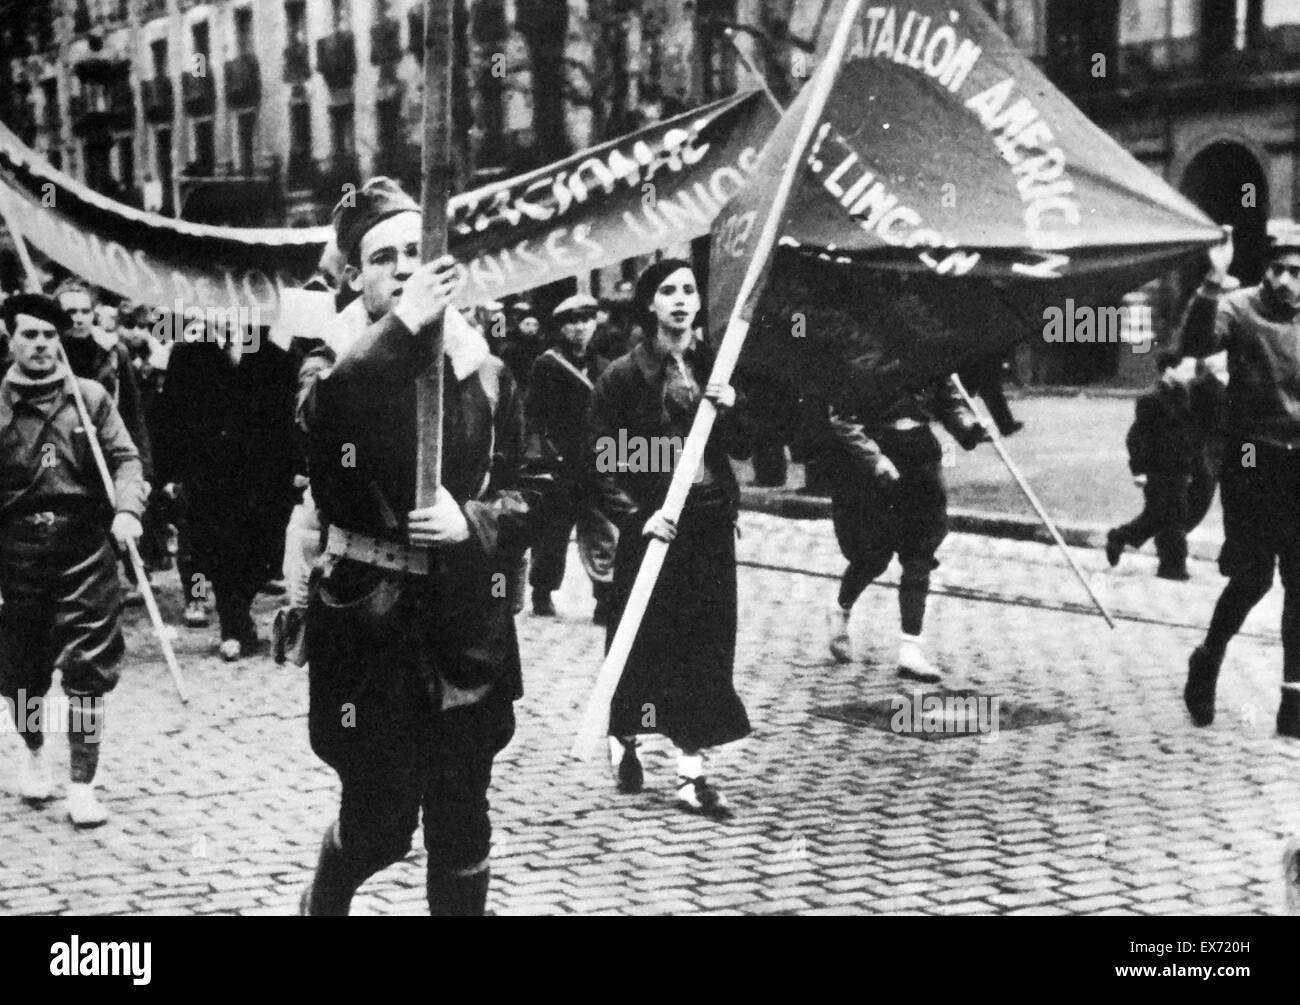 The American Lincoln battalion of the International Brigades during the Spanish Civil War 1937 - Stock Image